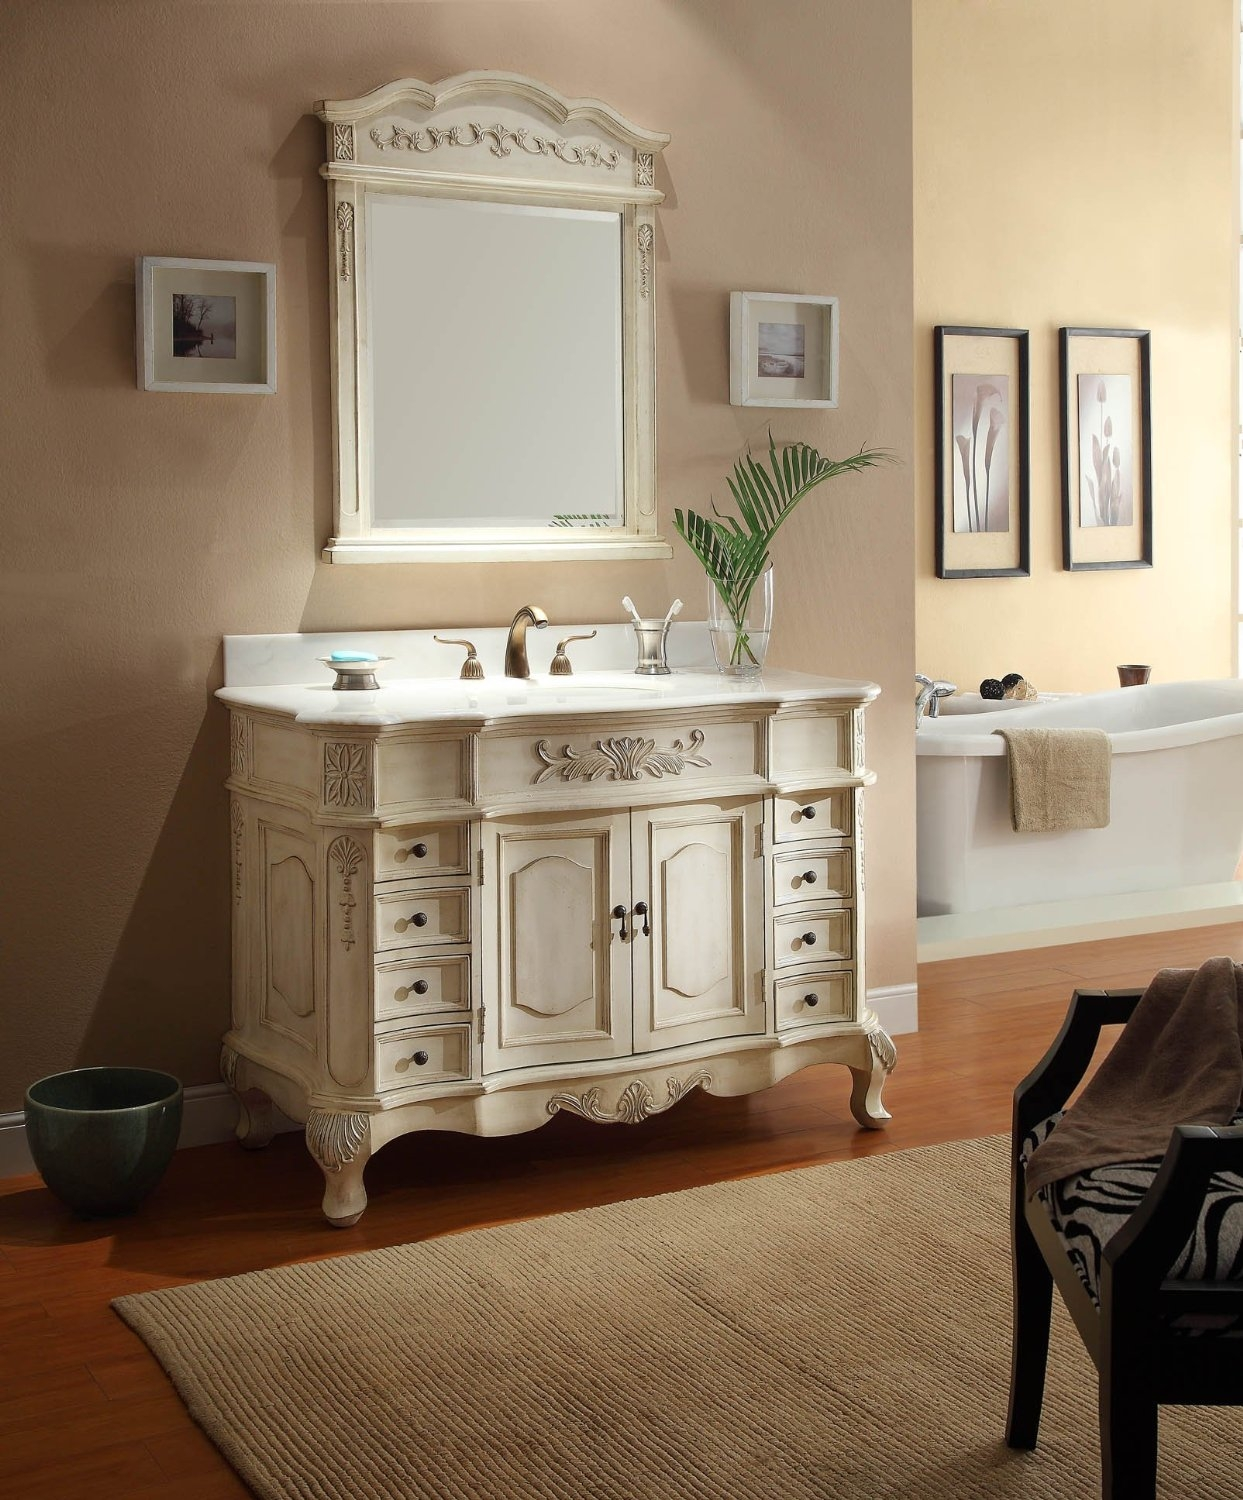 French Country Bathroom Vanities: 15+ French Style Bathroom Mirror